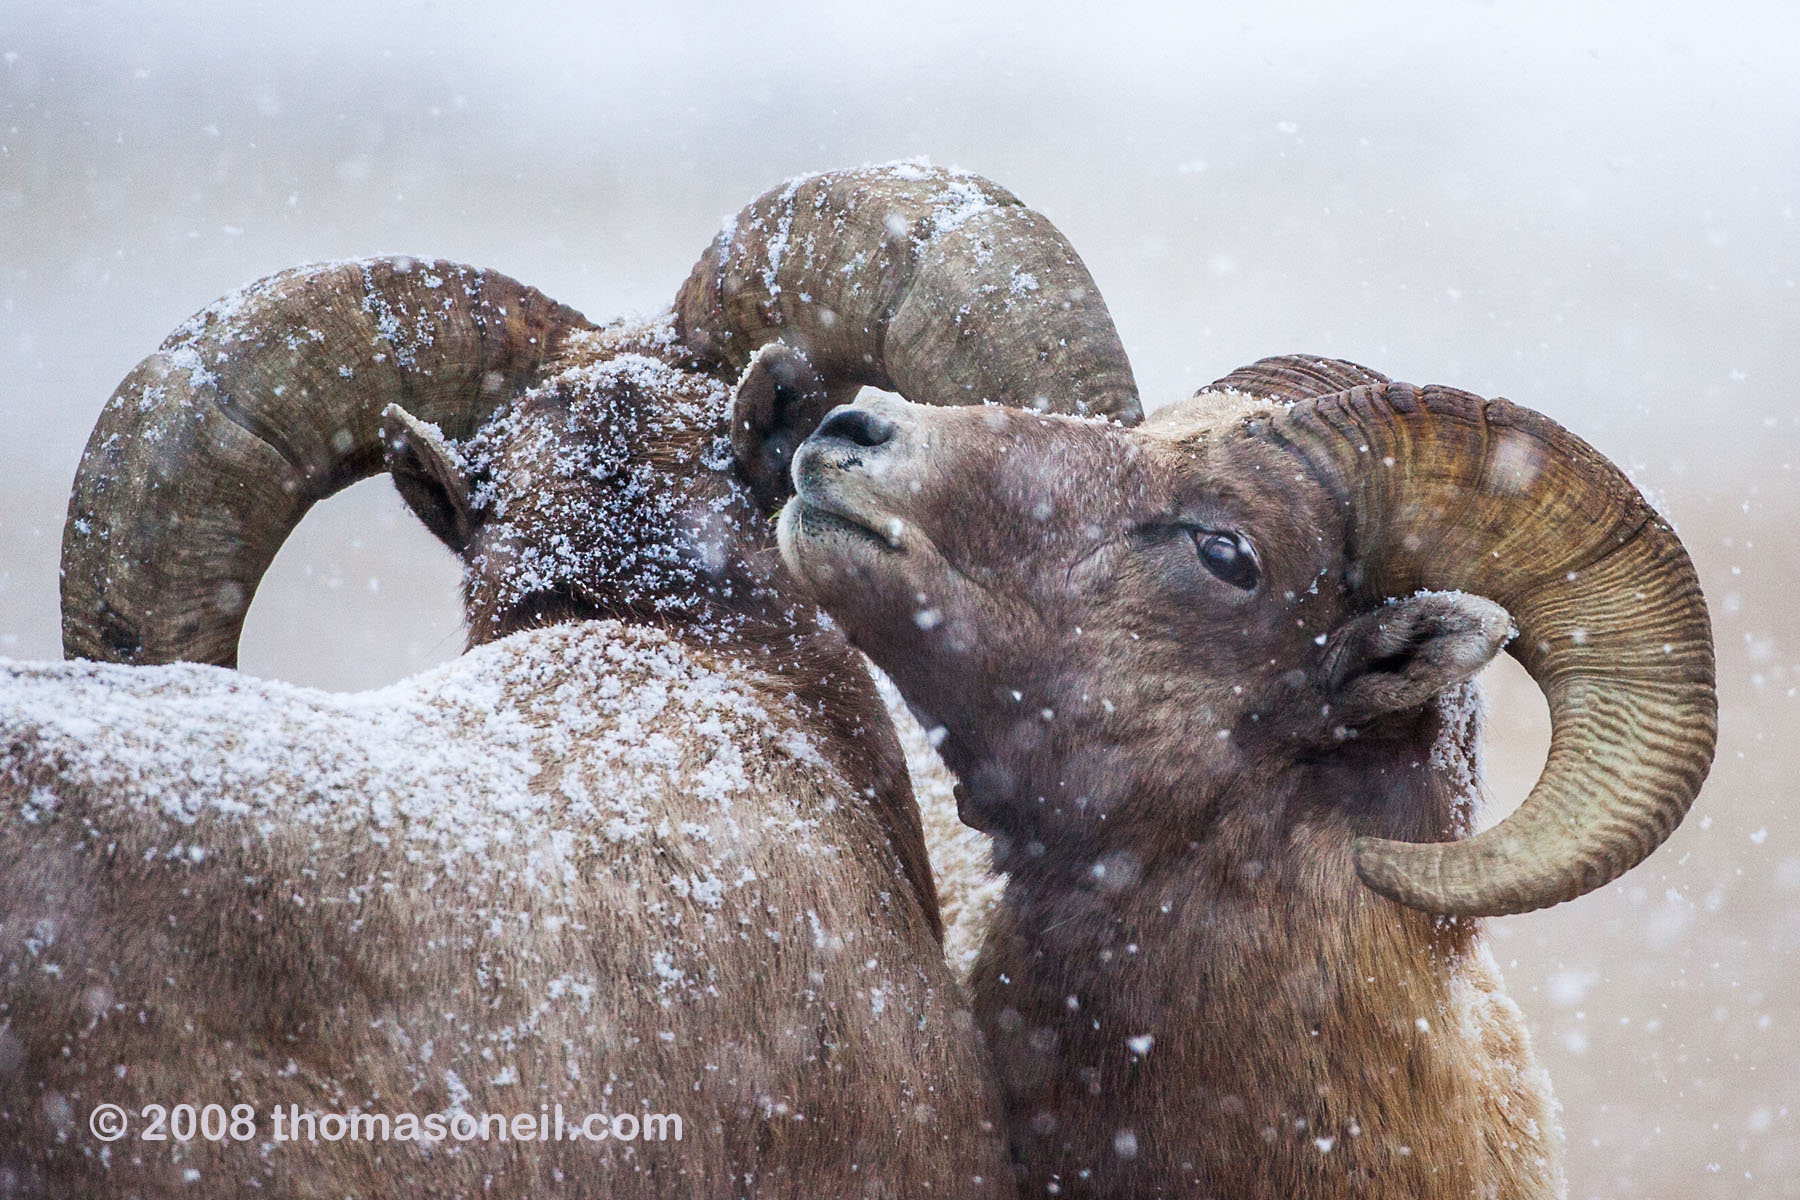 Rocky Mountain Bighorns in the snow, Custer State Park, SD, December 2008.  Click for next photo.